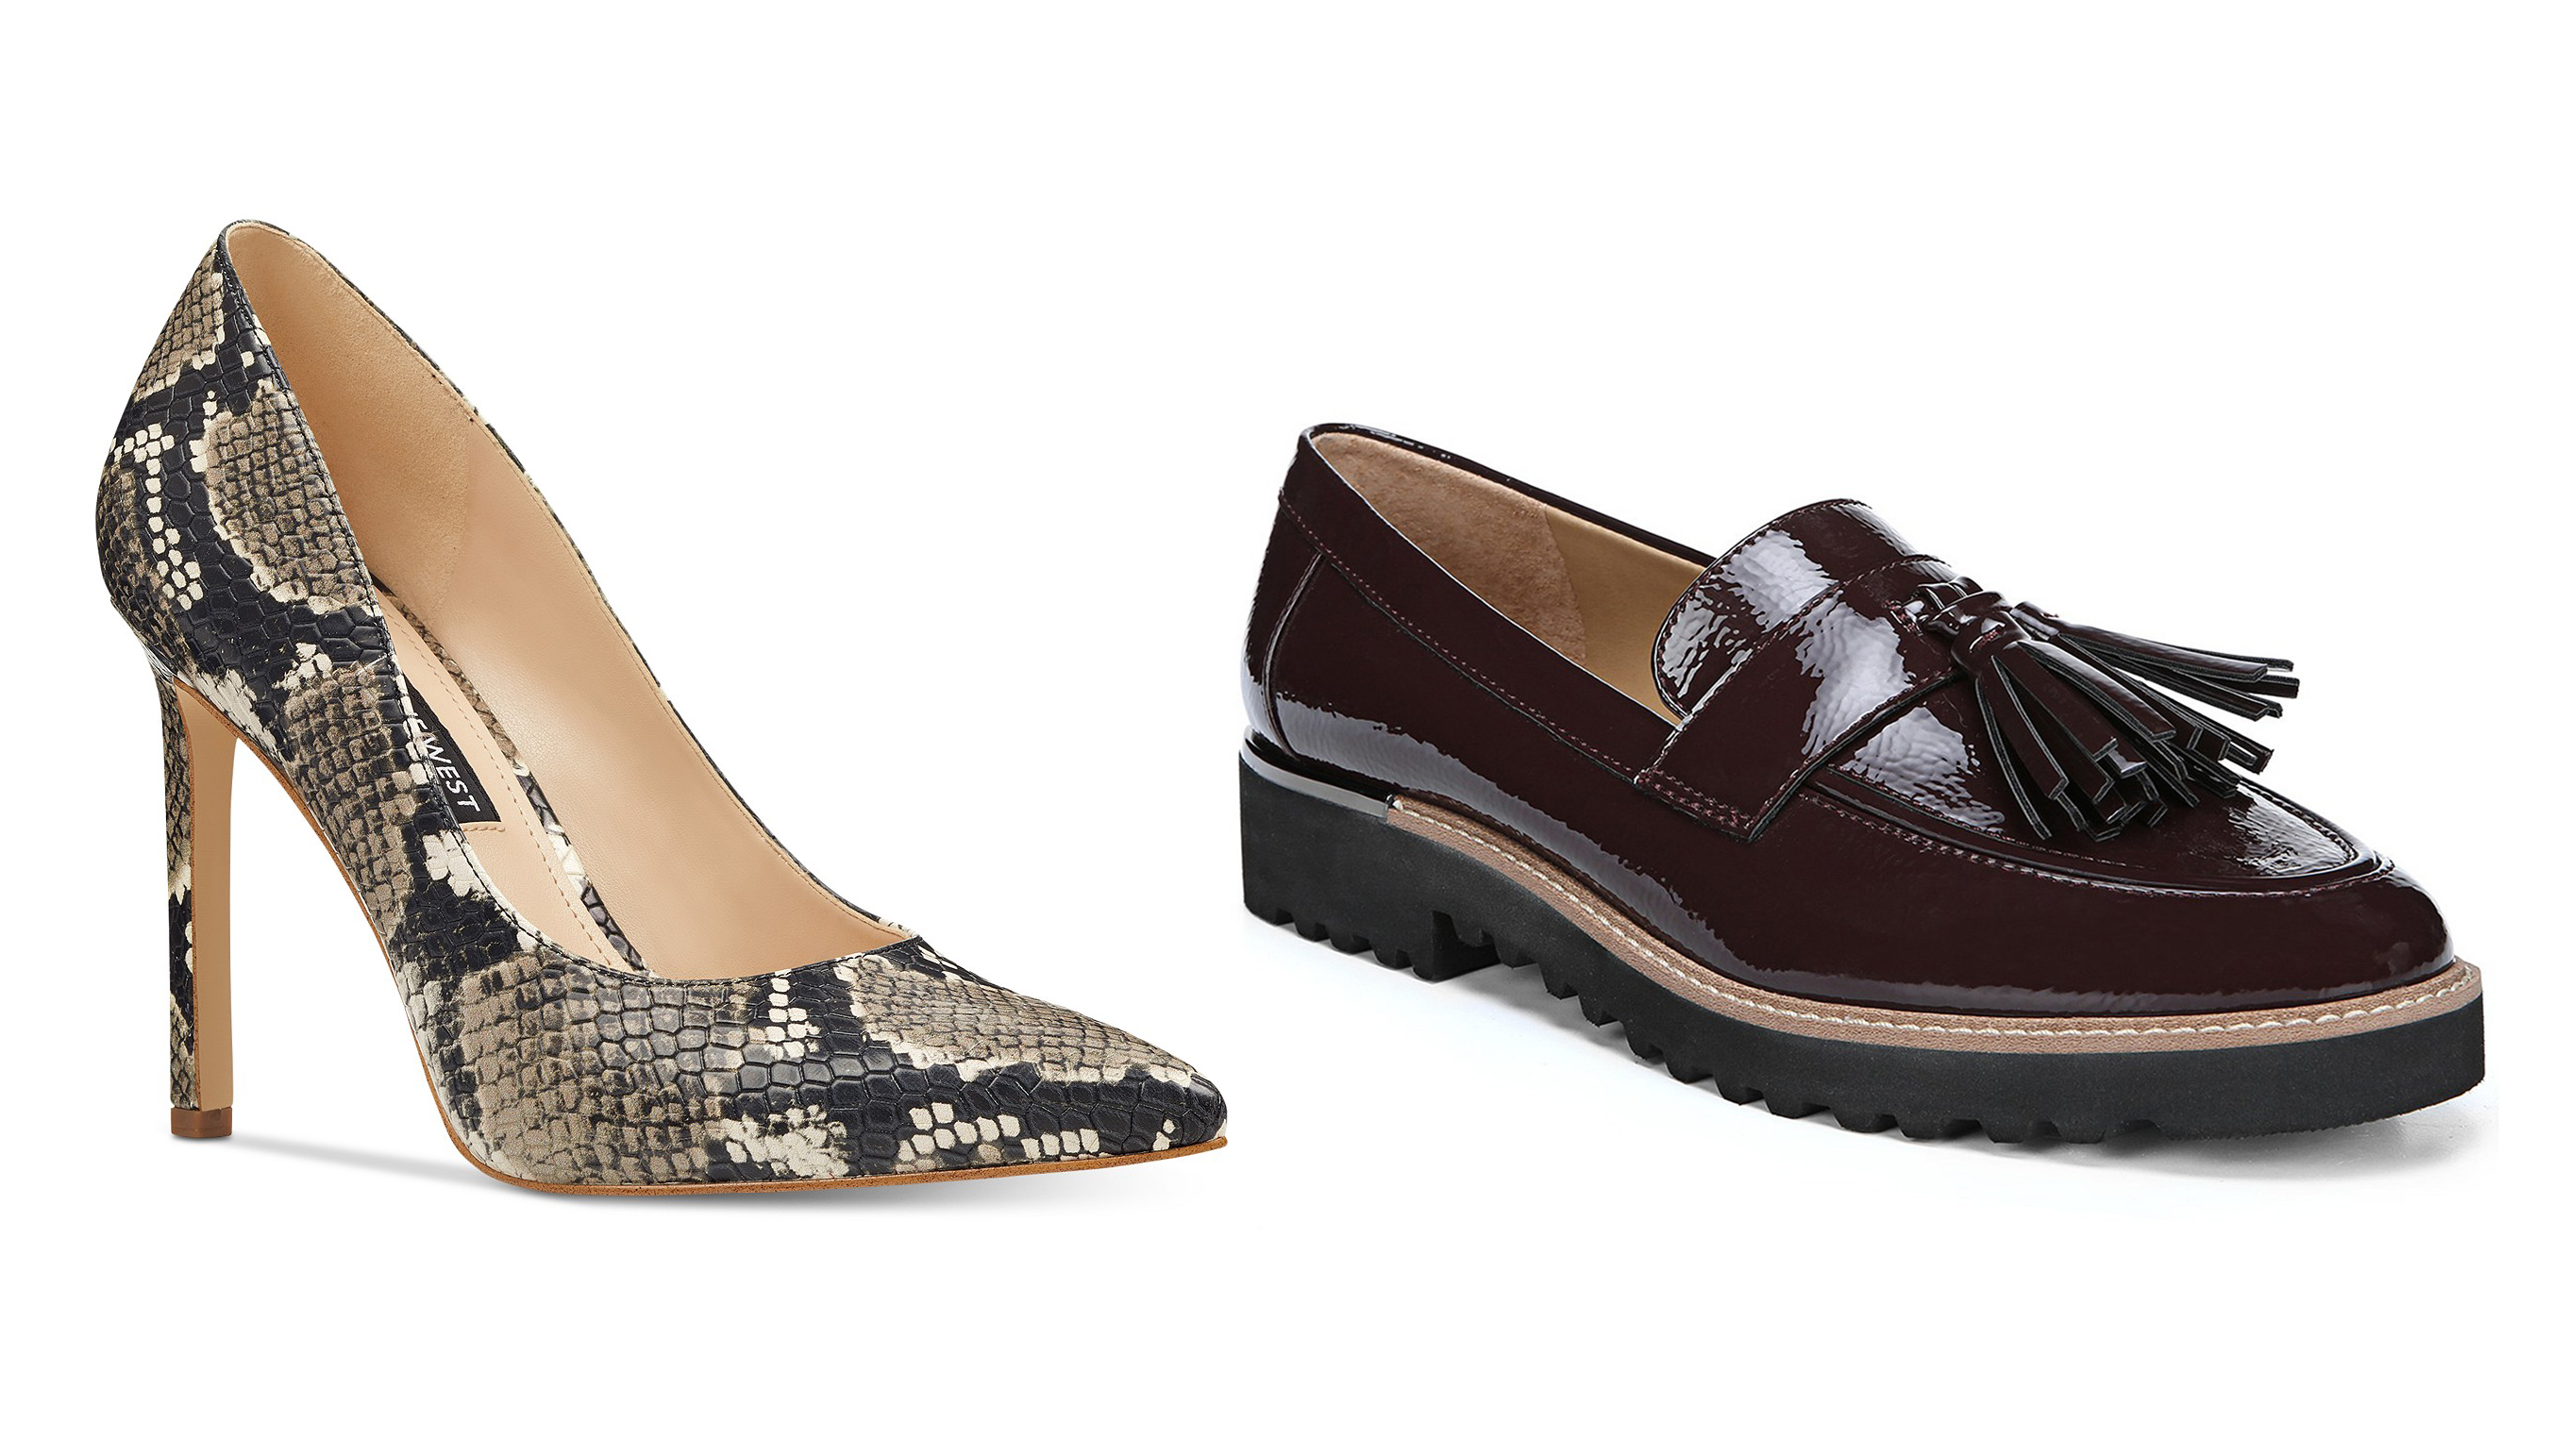 Macy's Great Shoe Sale Is on Right Now